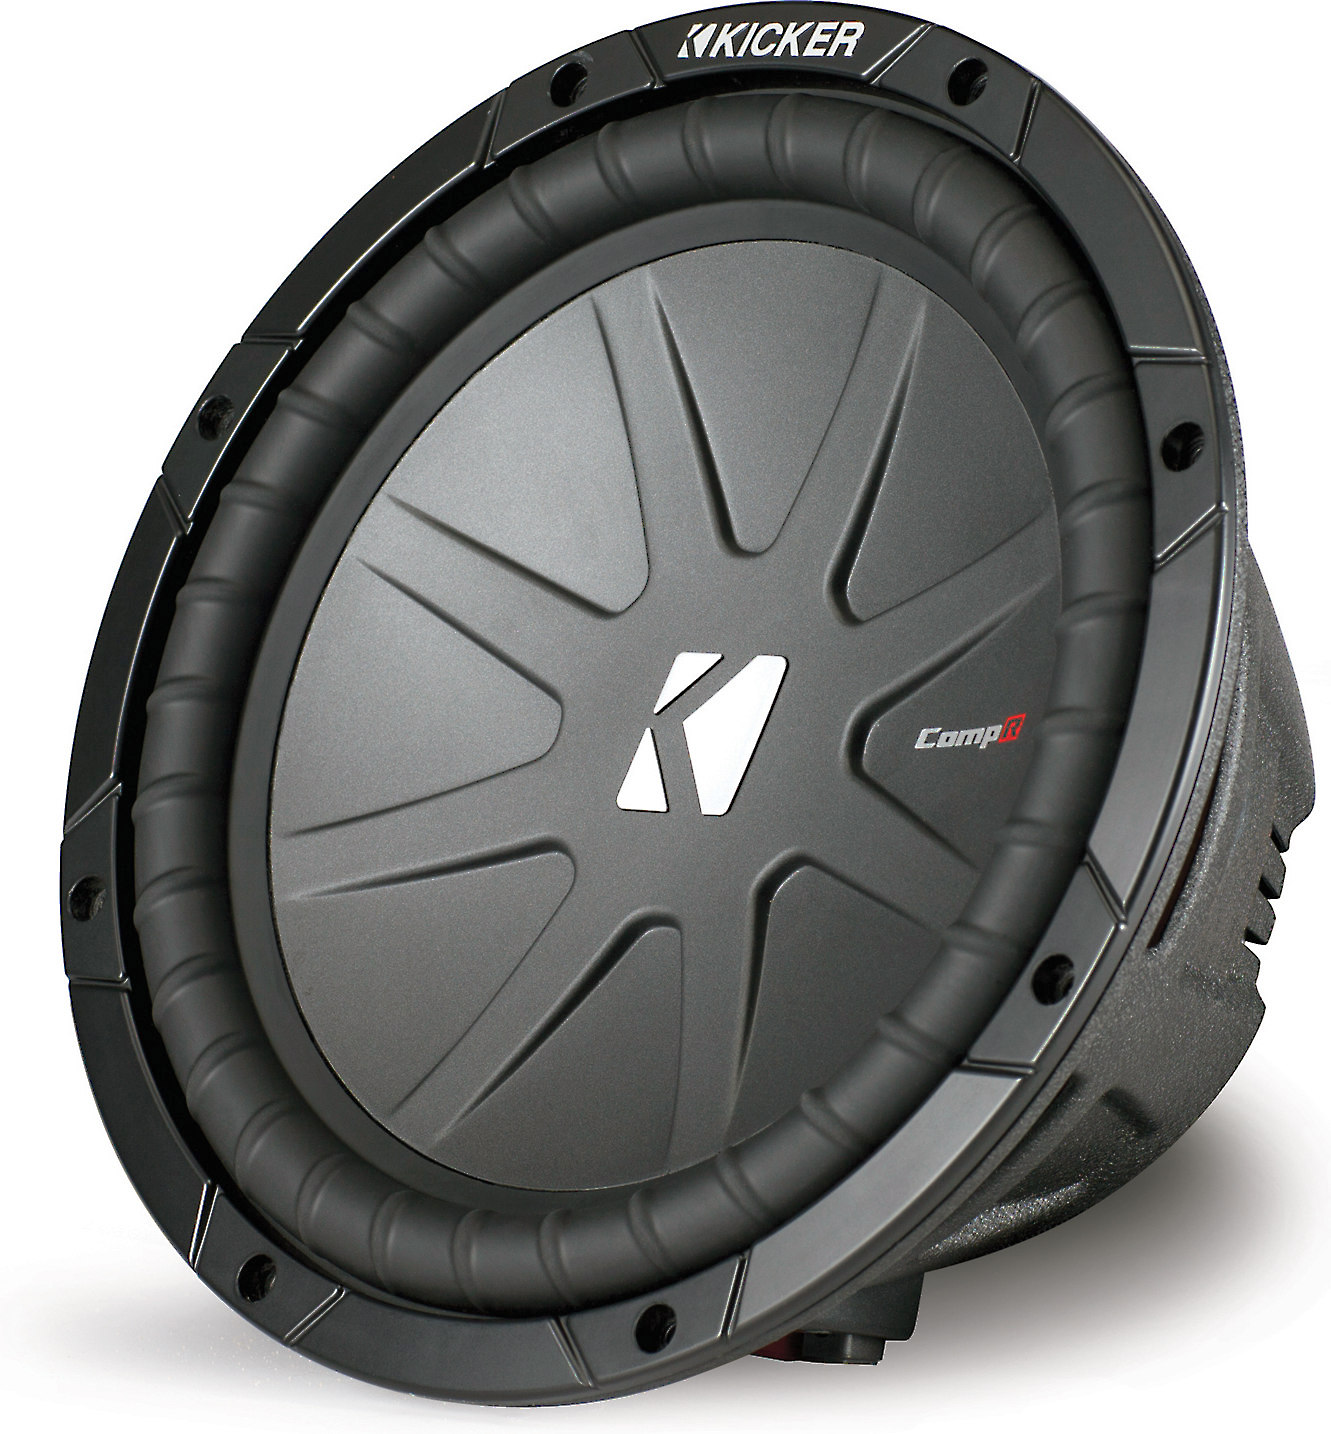 hight resolution of kicker 40cwr102 compr series 10 subwoofer with dual 2 ohm voice coils at crutchfield com